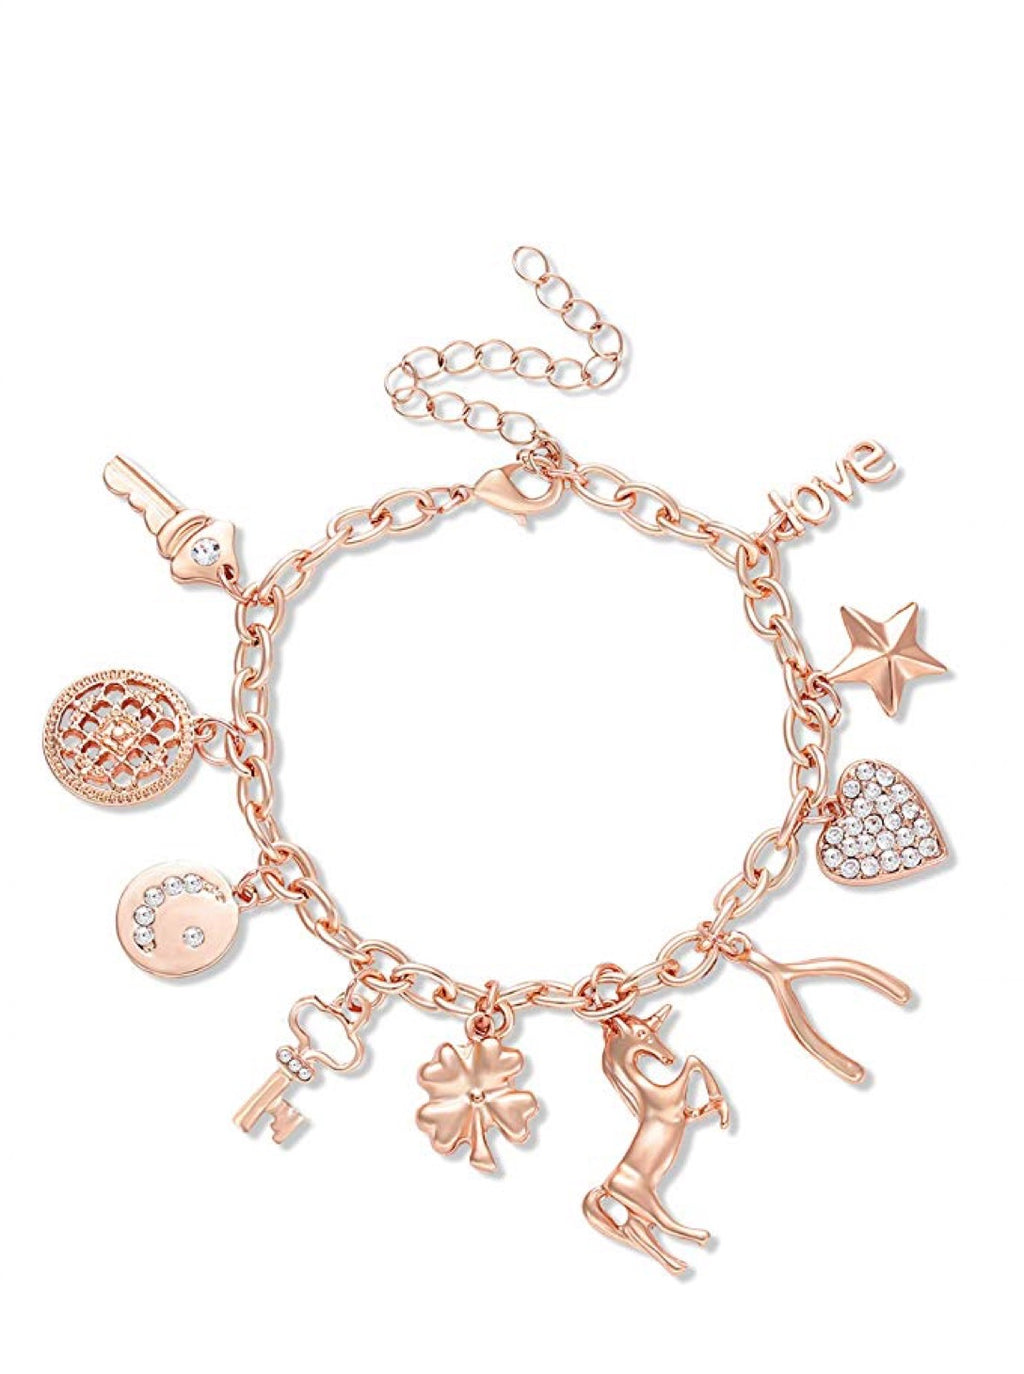 18K Rose Gold Charm Embelished Bracelet